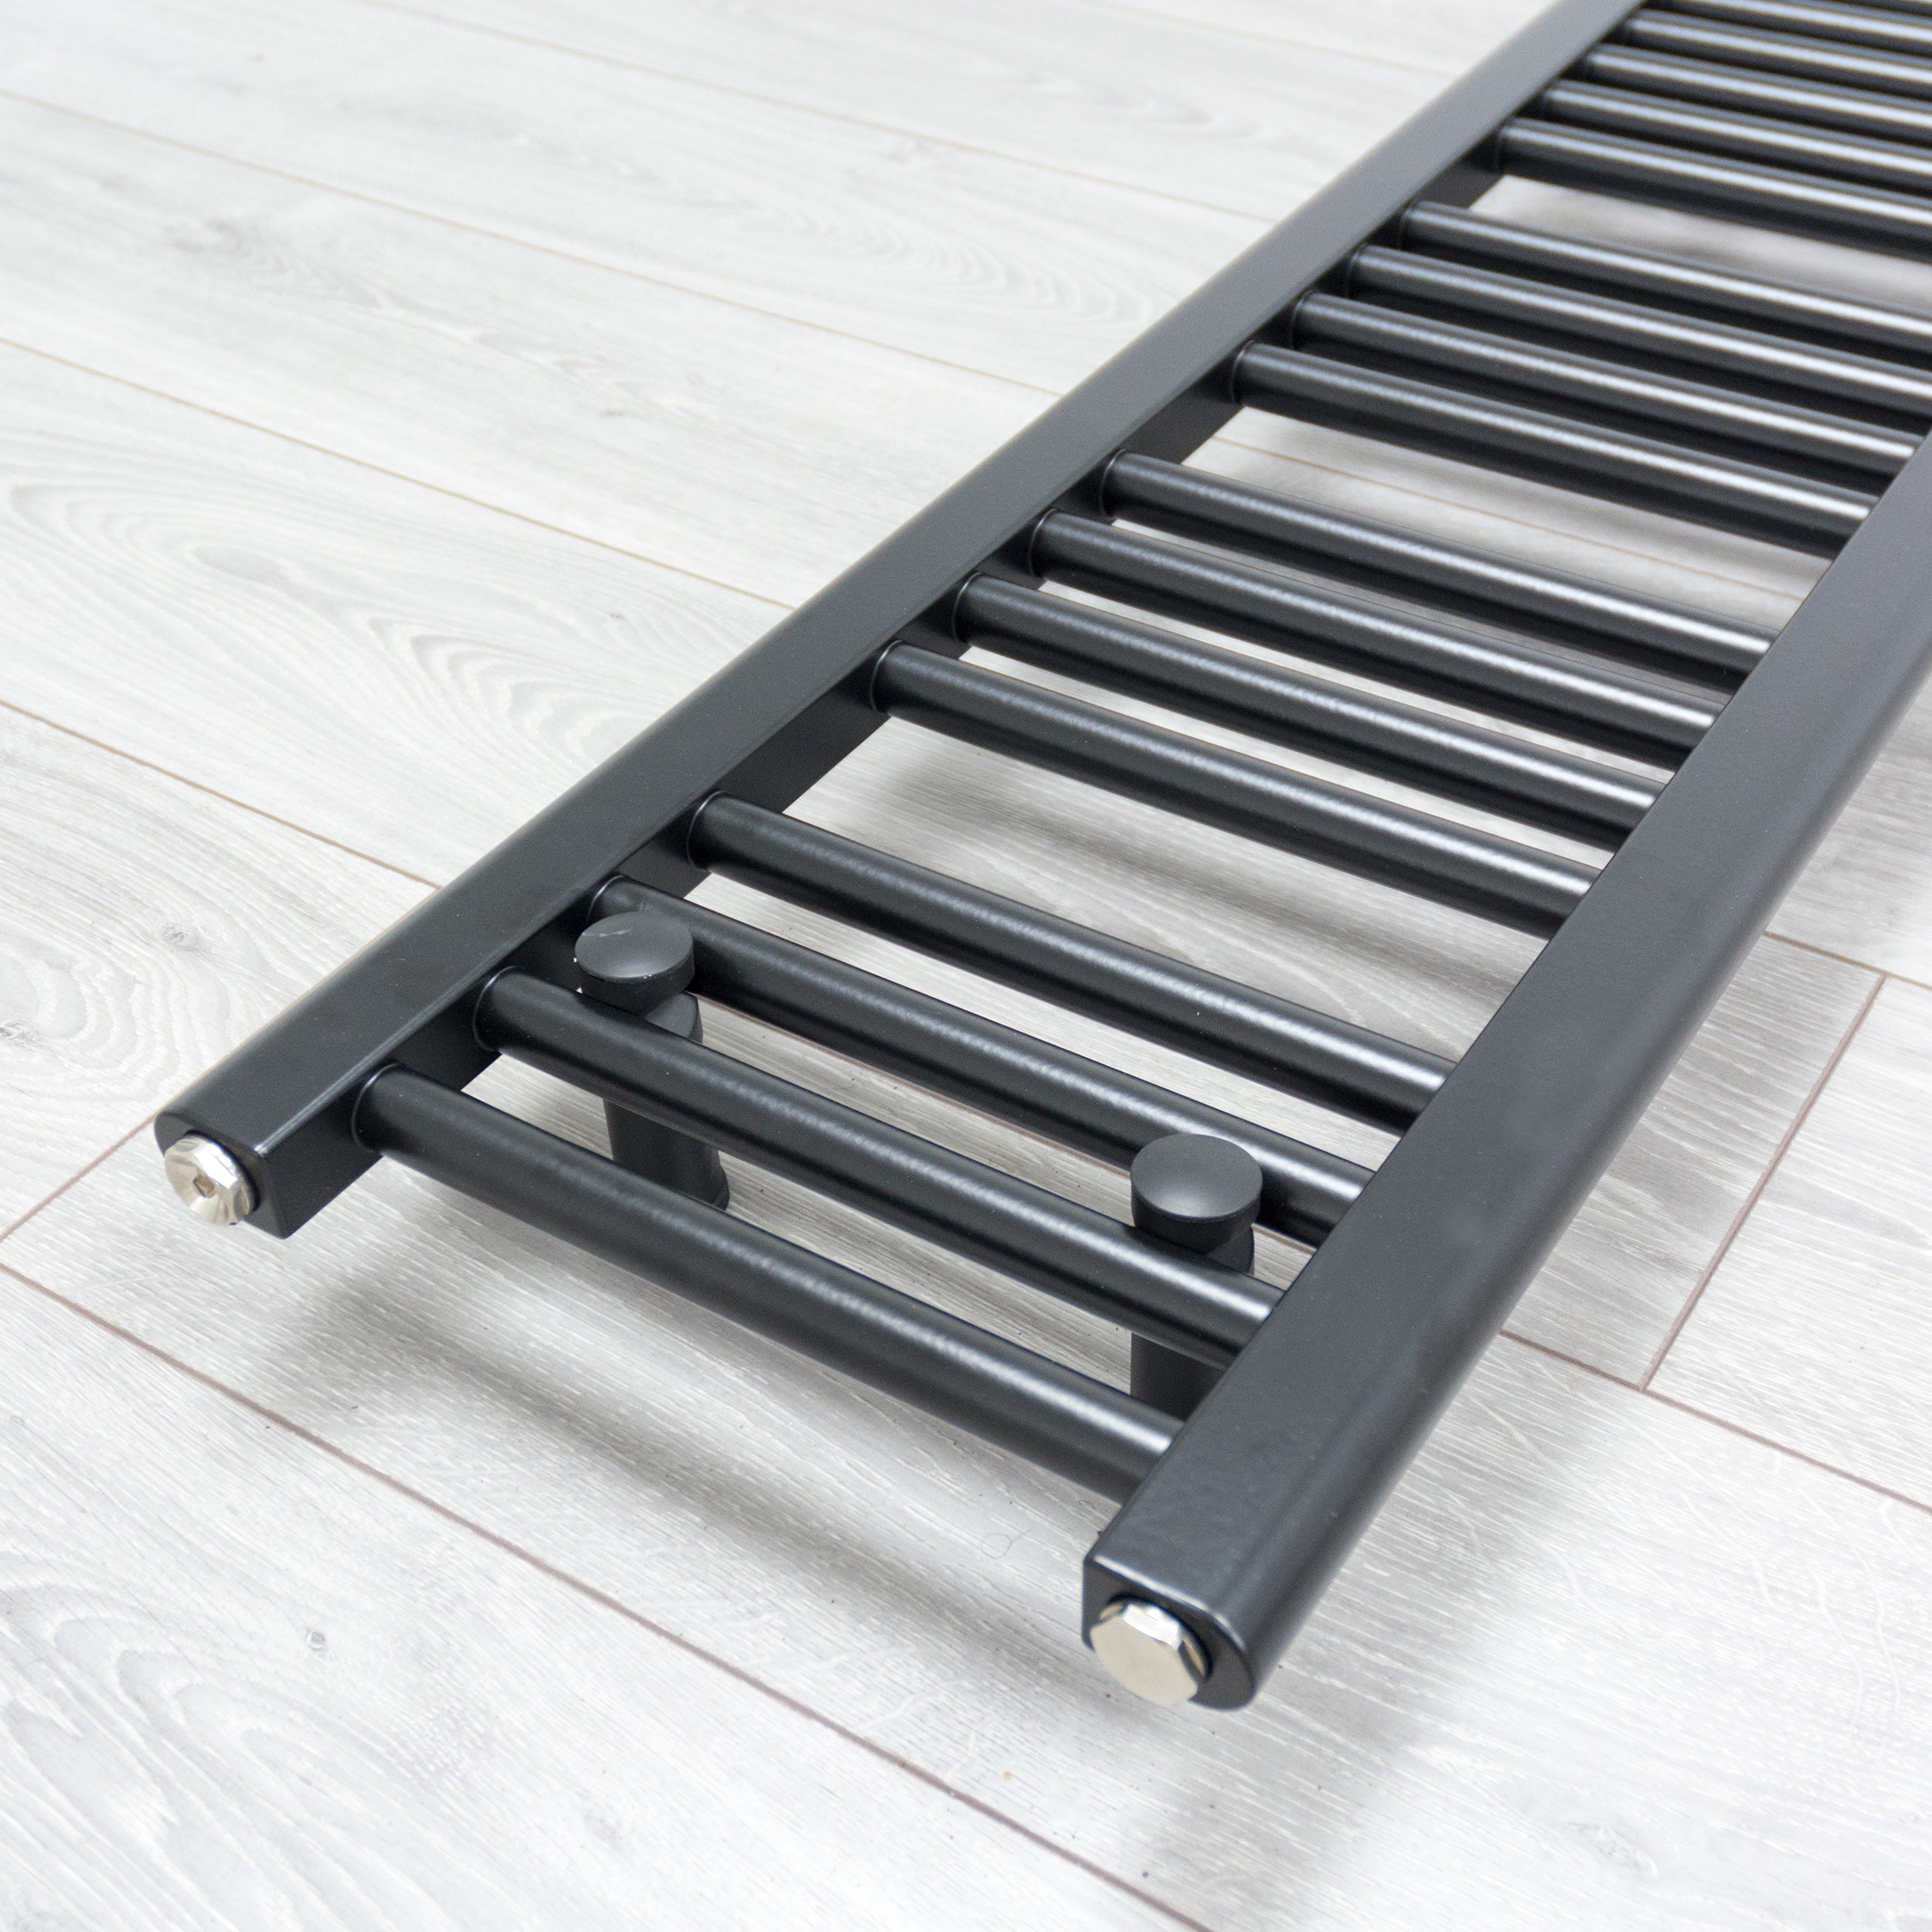 300mm x 1600mm Black Heated Towel Rail Radiator Close Up Image